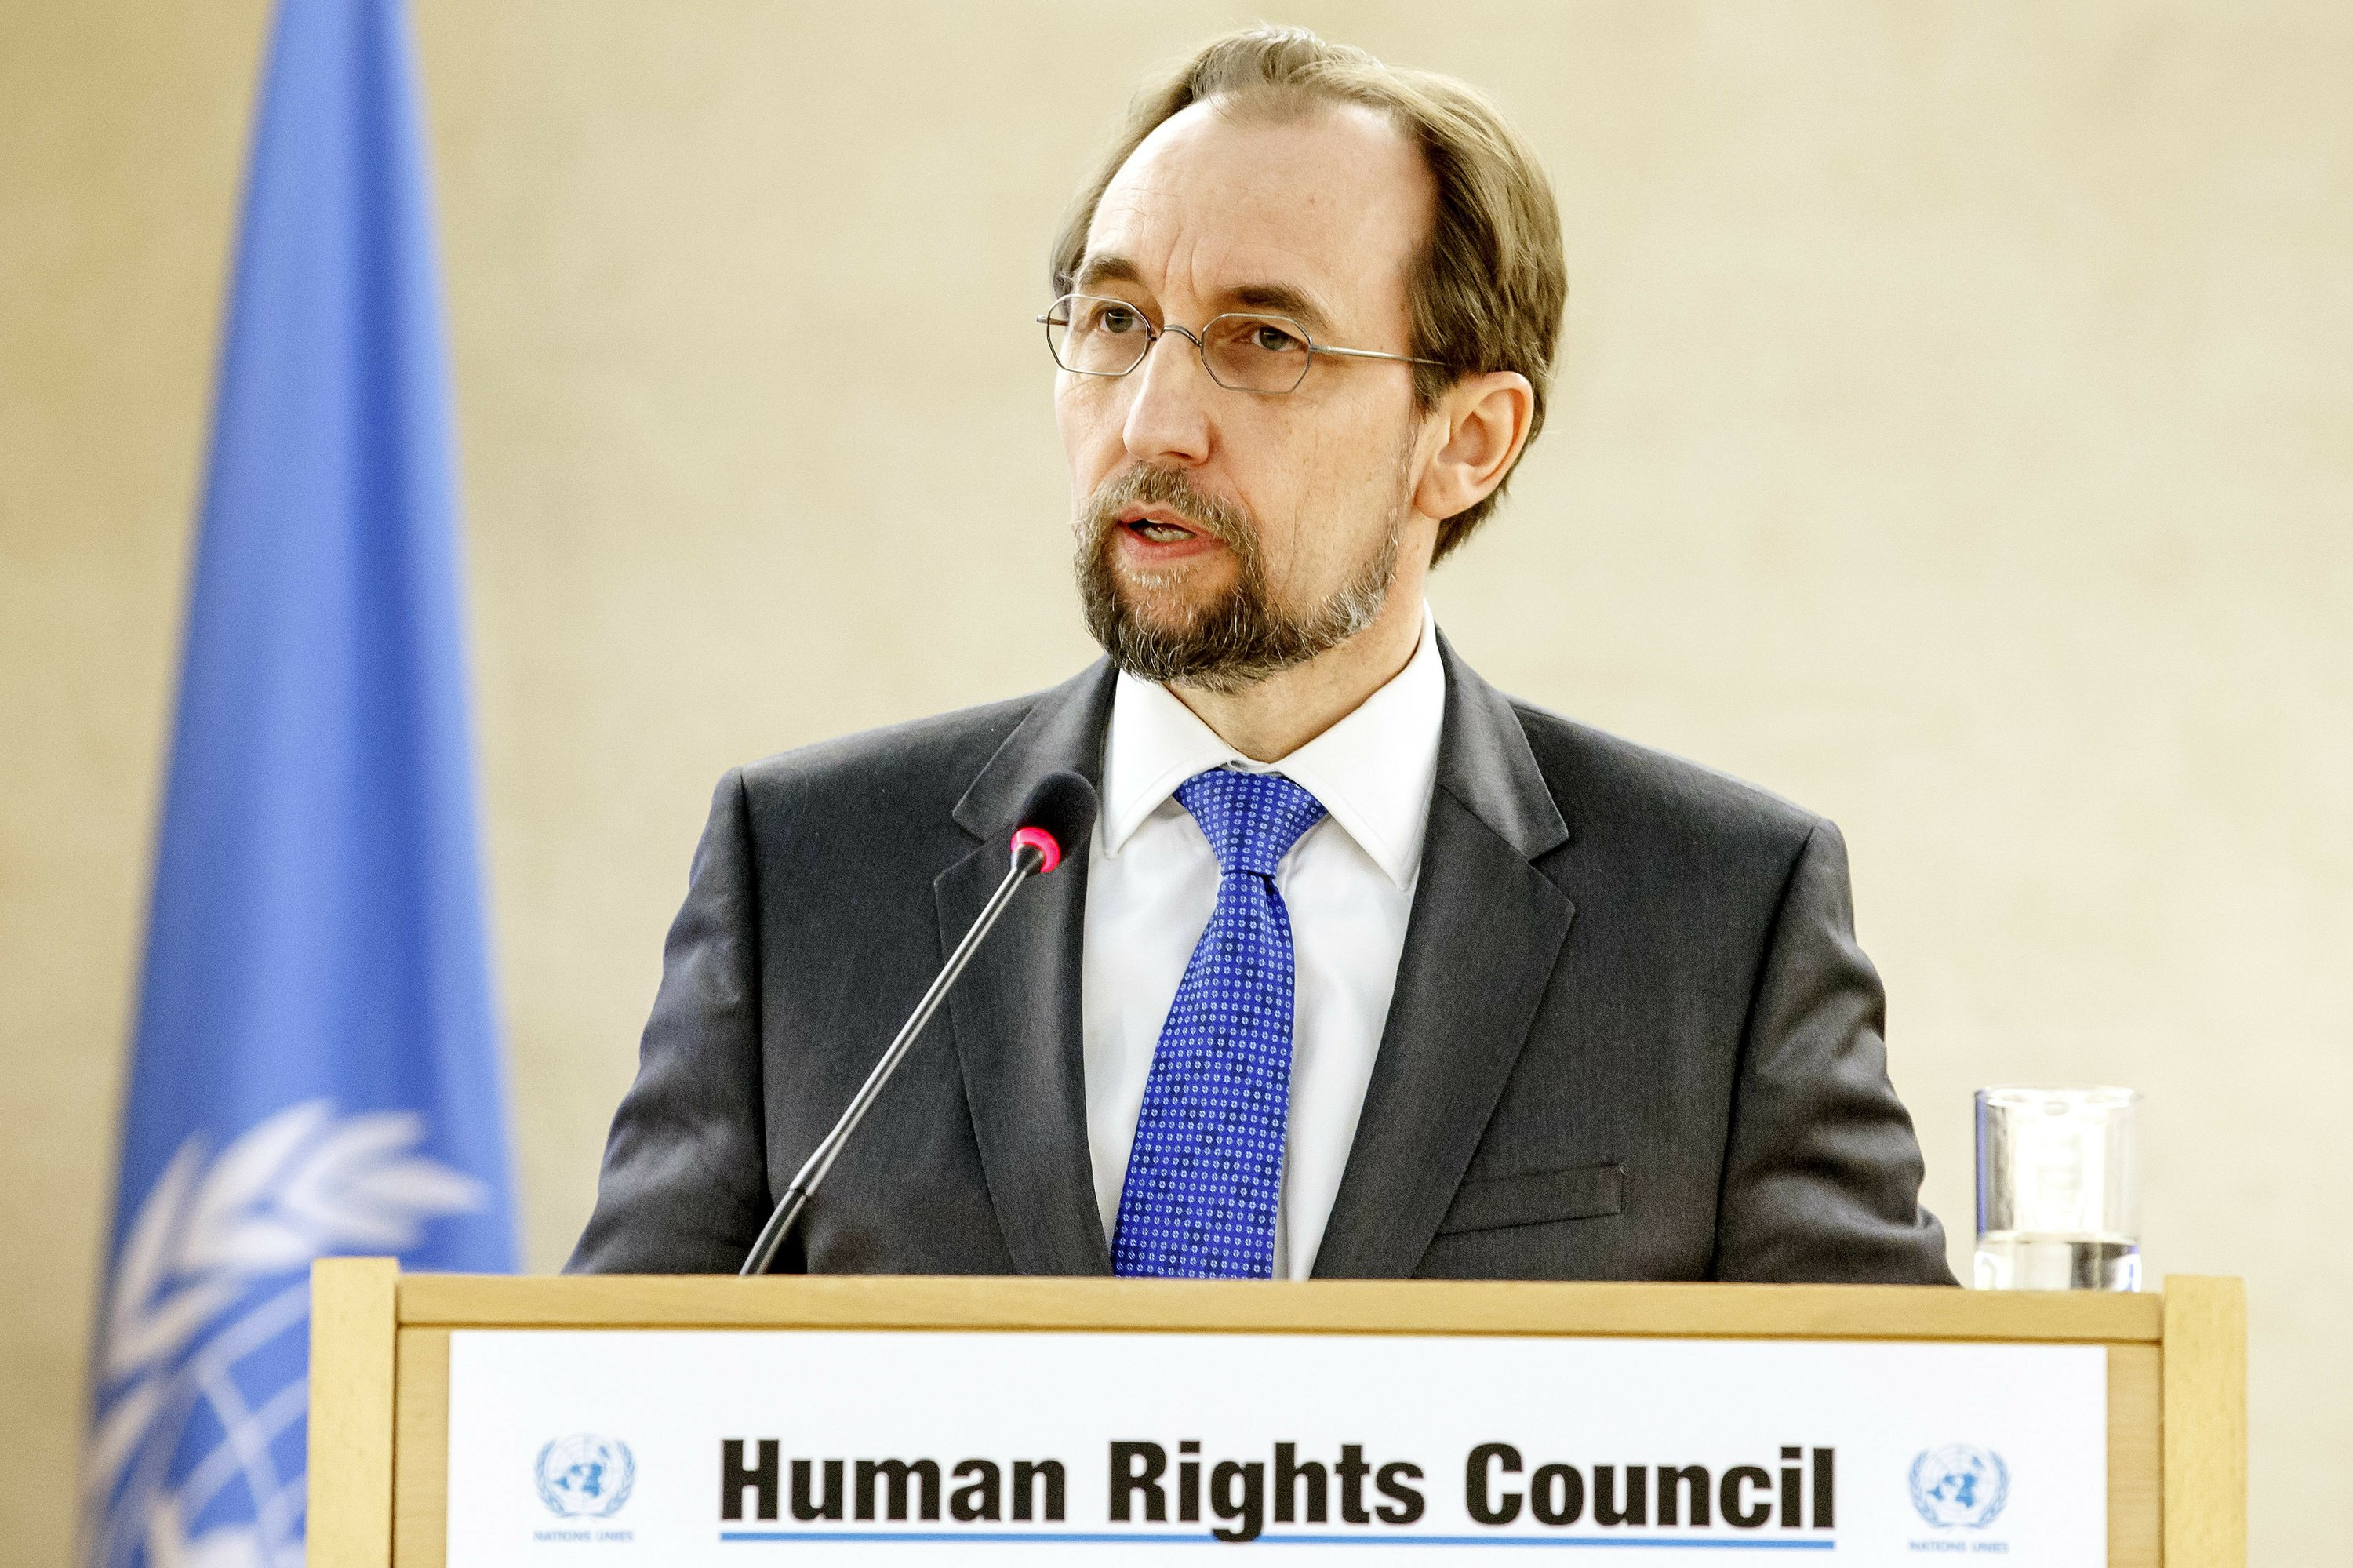 UN rights chief 'dismayed' at Trump efforts to 'intimidate'